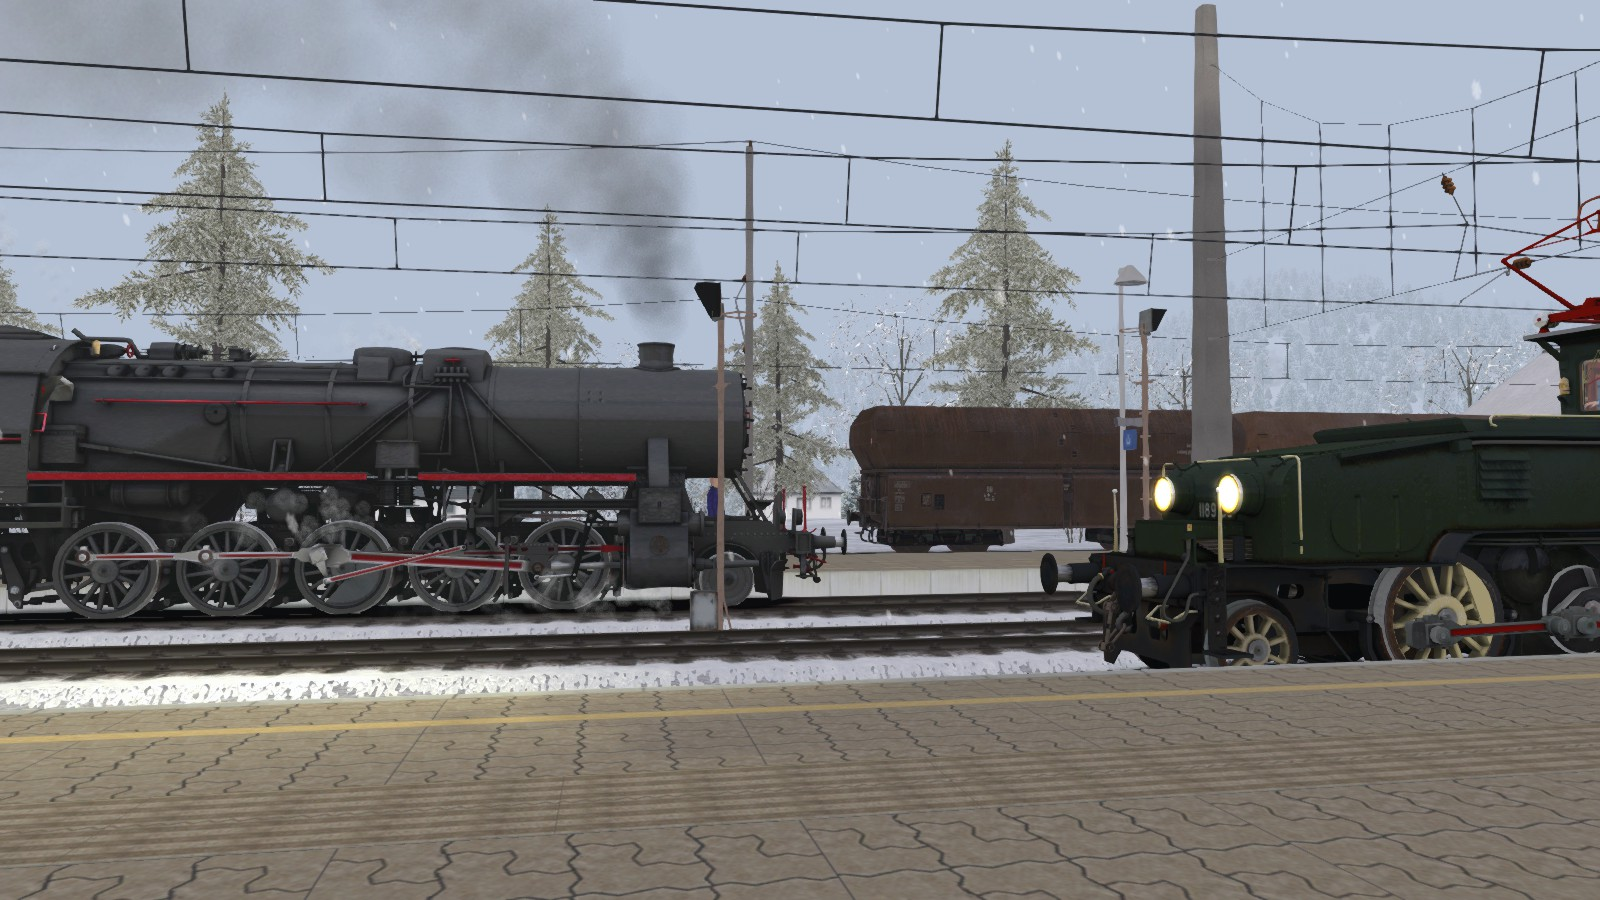 https://i2.wp.com/www.steamtrainsunlimited.com/wp-content/uploads/2016/05/2015-12-31_00003.jpg